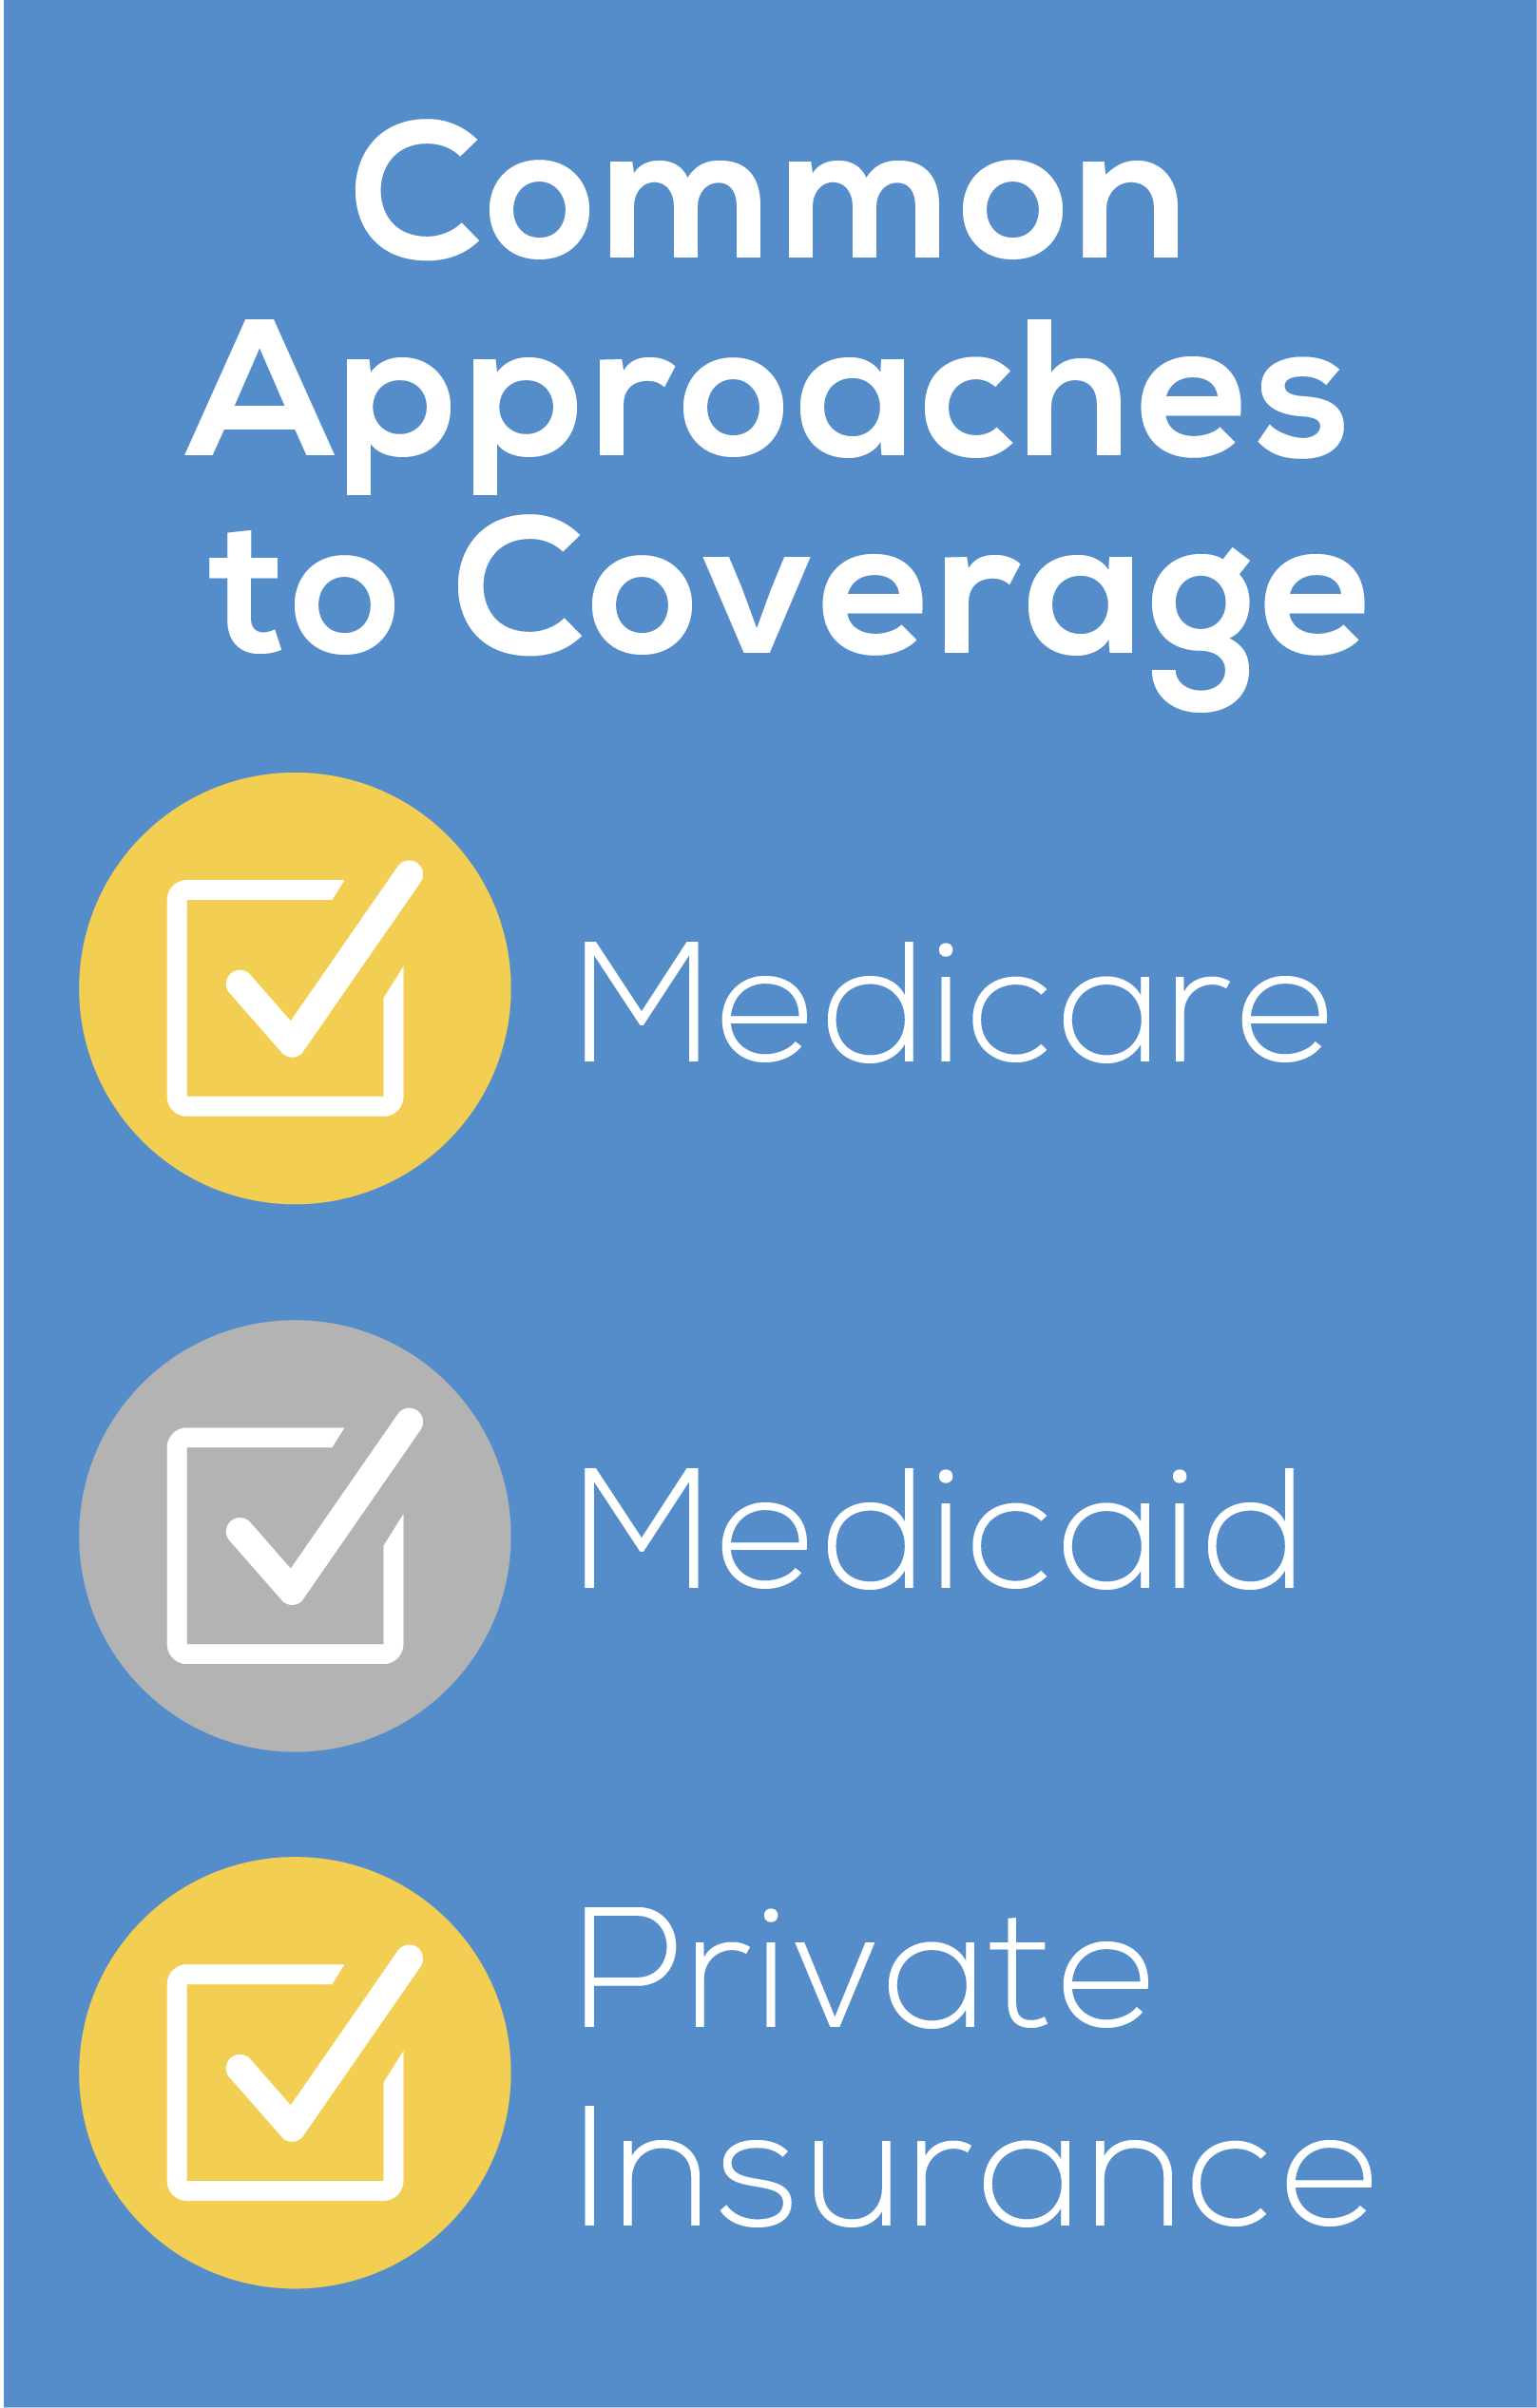 a critical analysis of medicaid an insurance program in the united states An analysis of access to anticonvulsants  an estimated 22 million people in the united states  an analysis of access to anticonvulsants in medicare part d and.